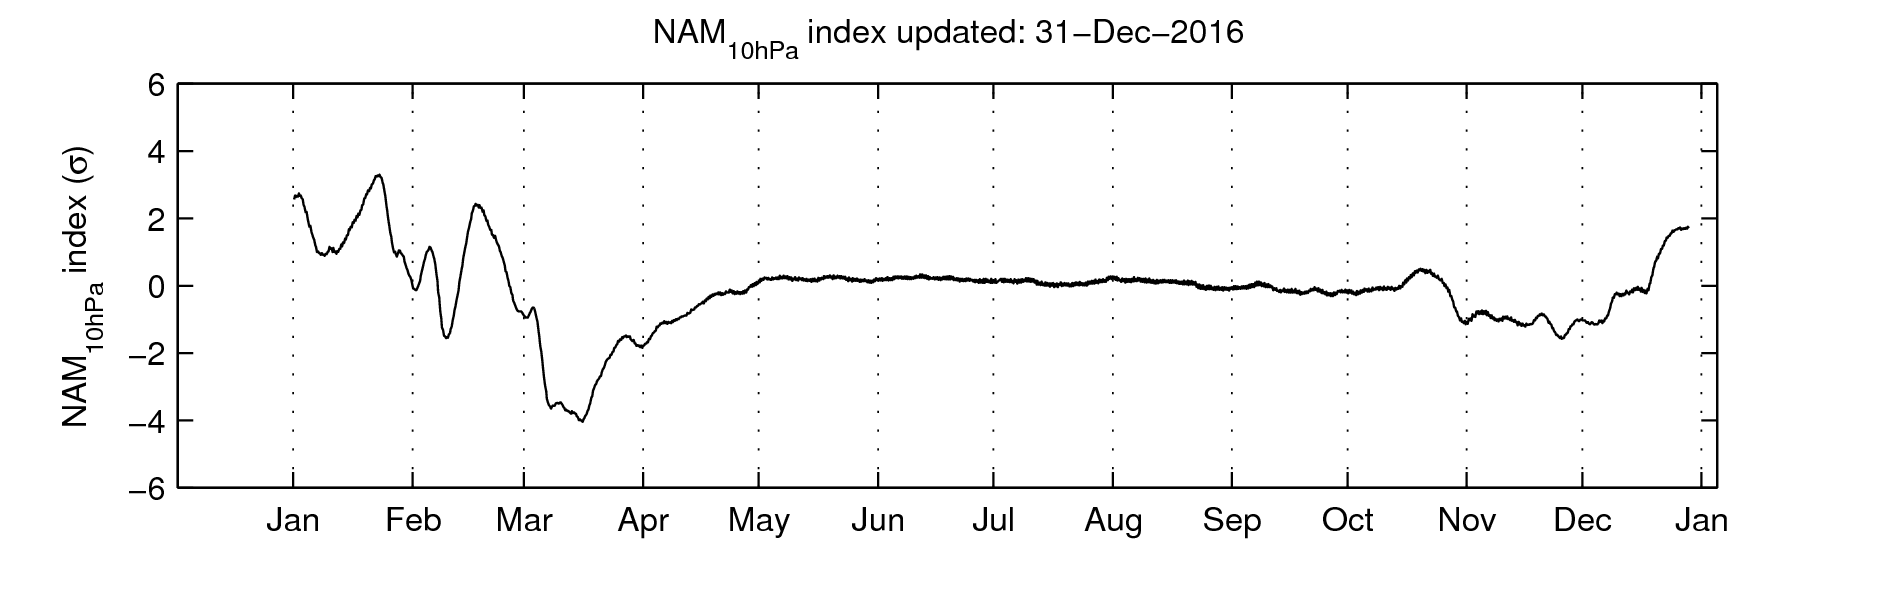 Northern Annular Mode (NAM) index at 10 hPa